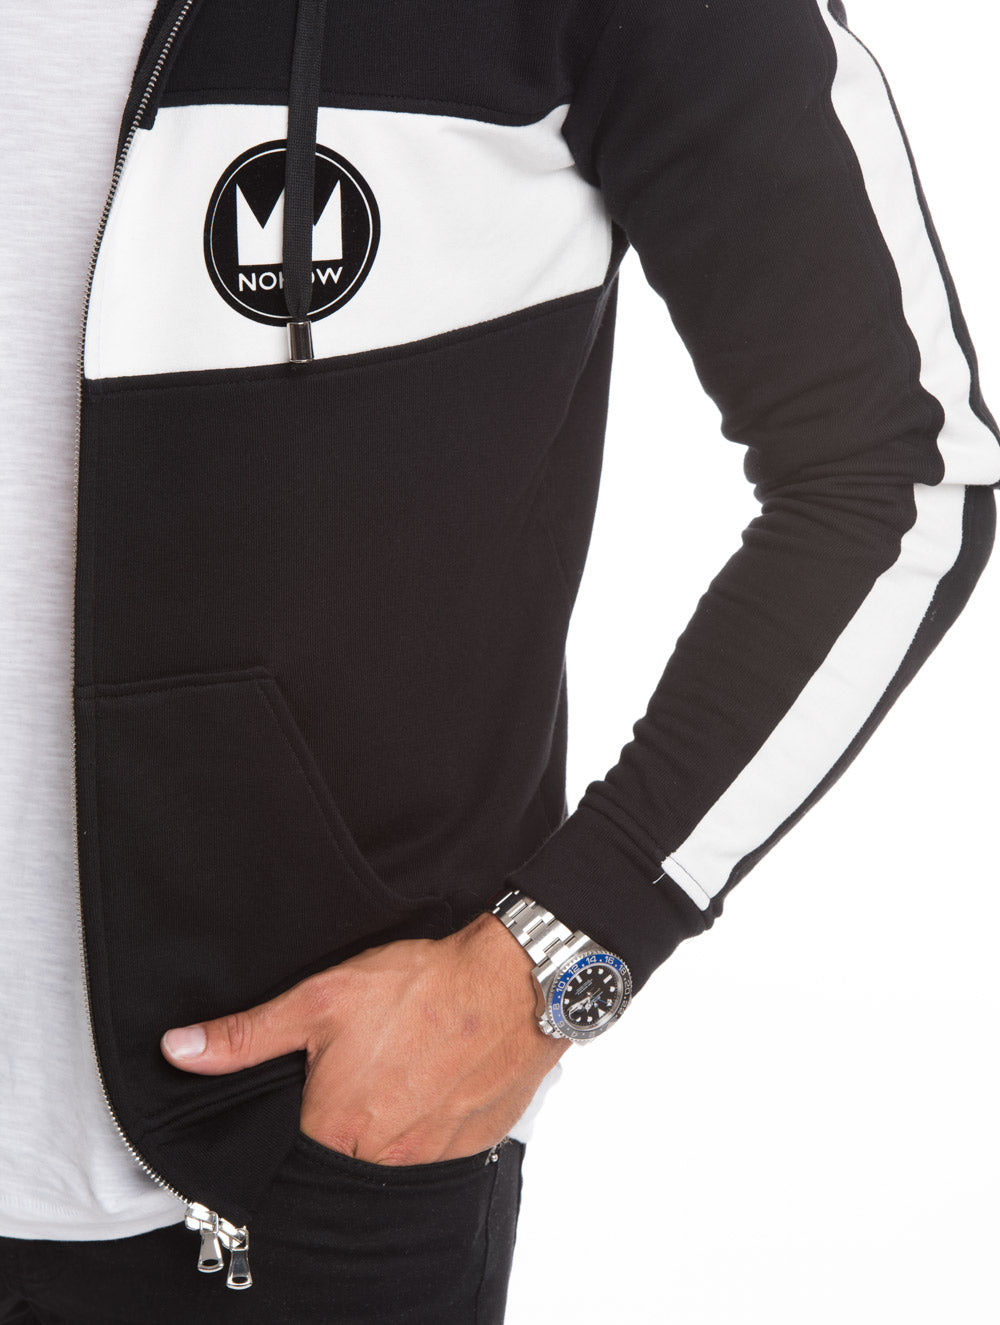 MEN'S CLOTHING | FULL ZIP BLACK HOODIE WITH WHITE STRIPE | BLACK SWEATSHIRT| COTTON | NOHOW